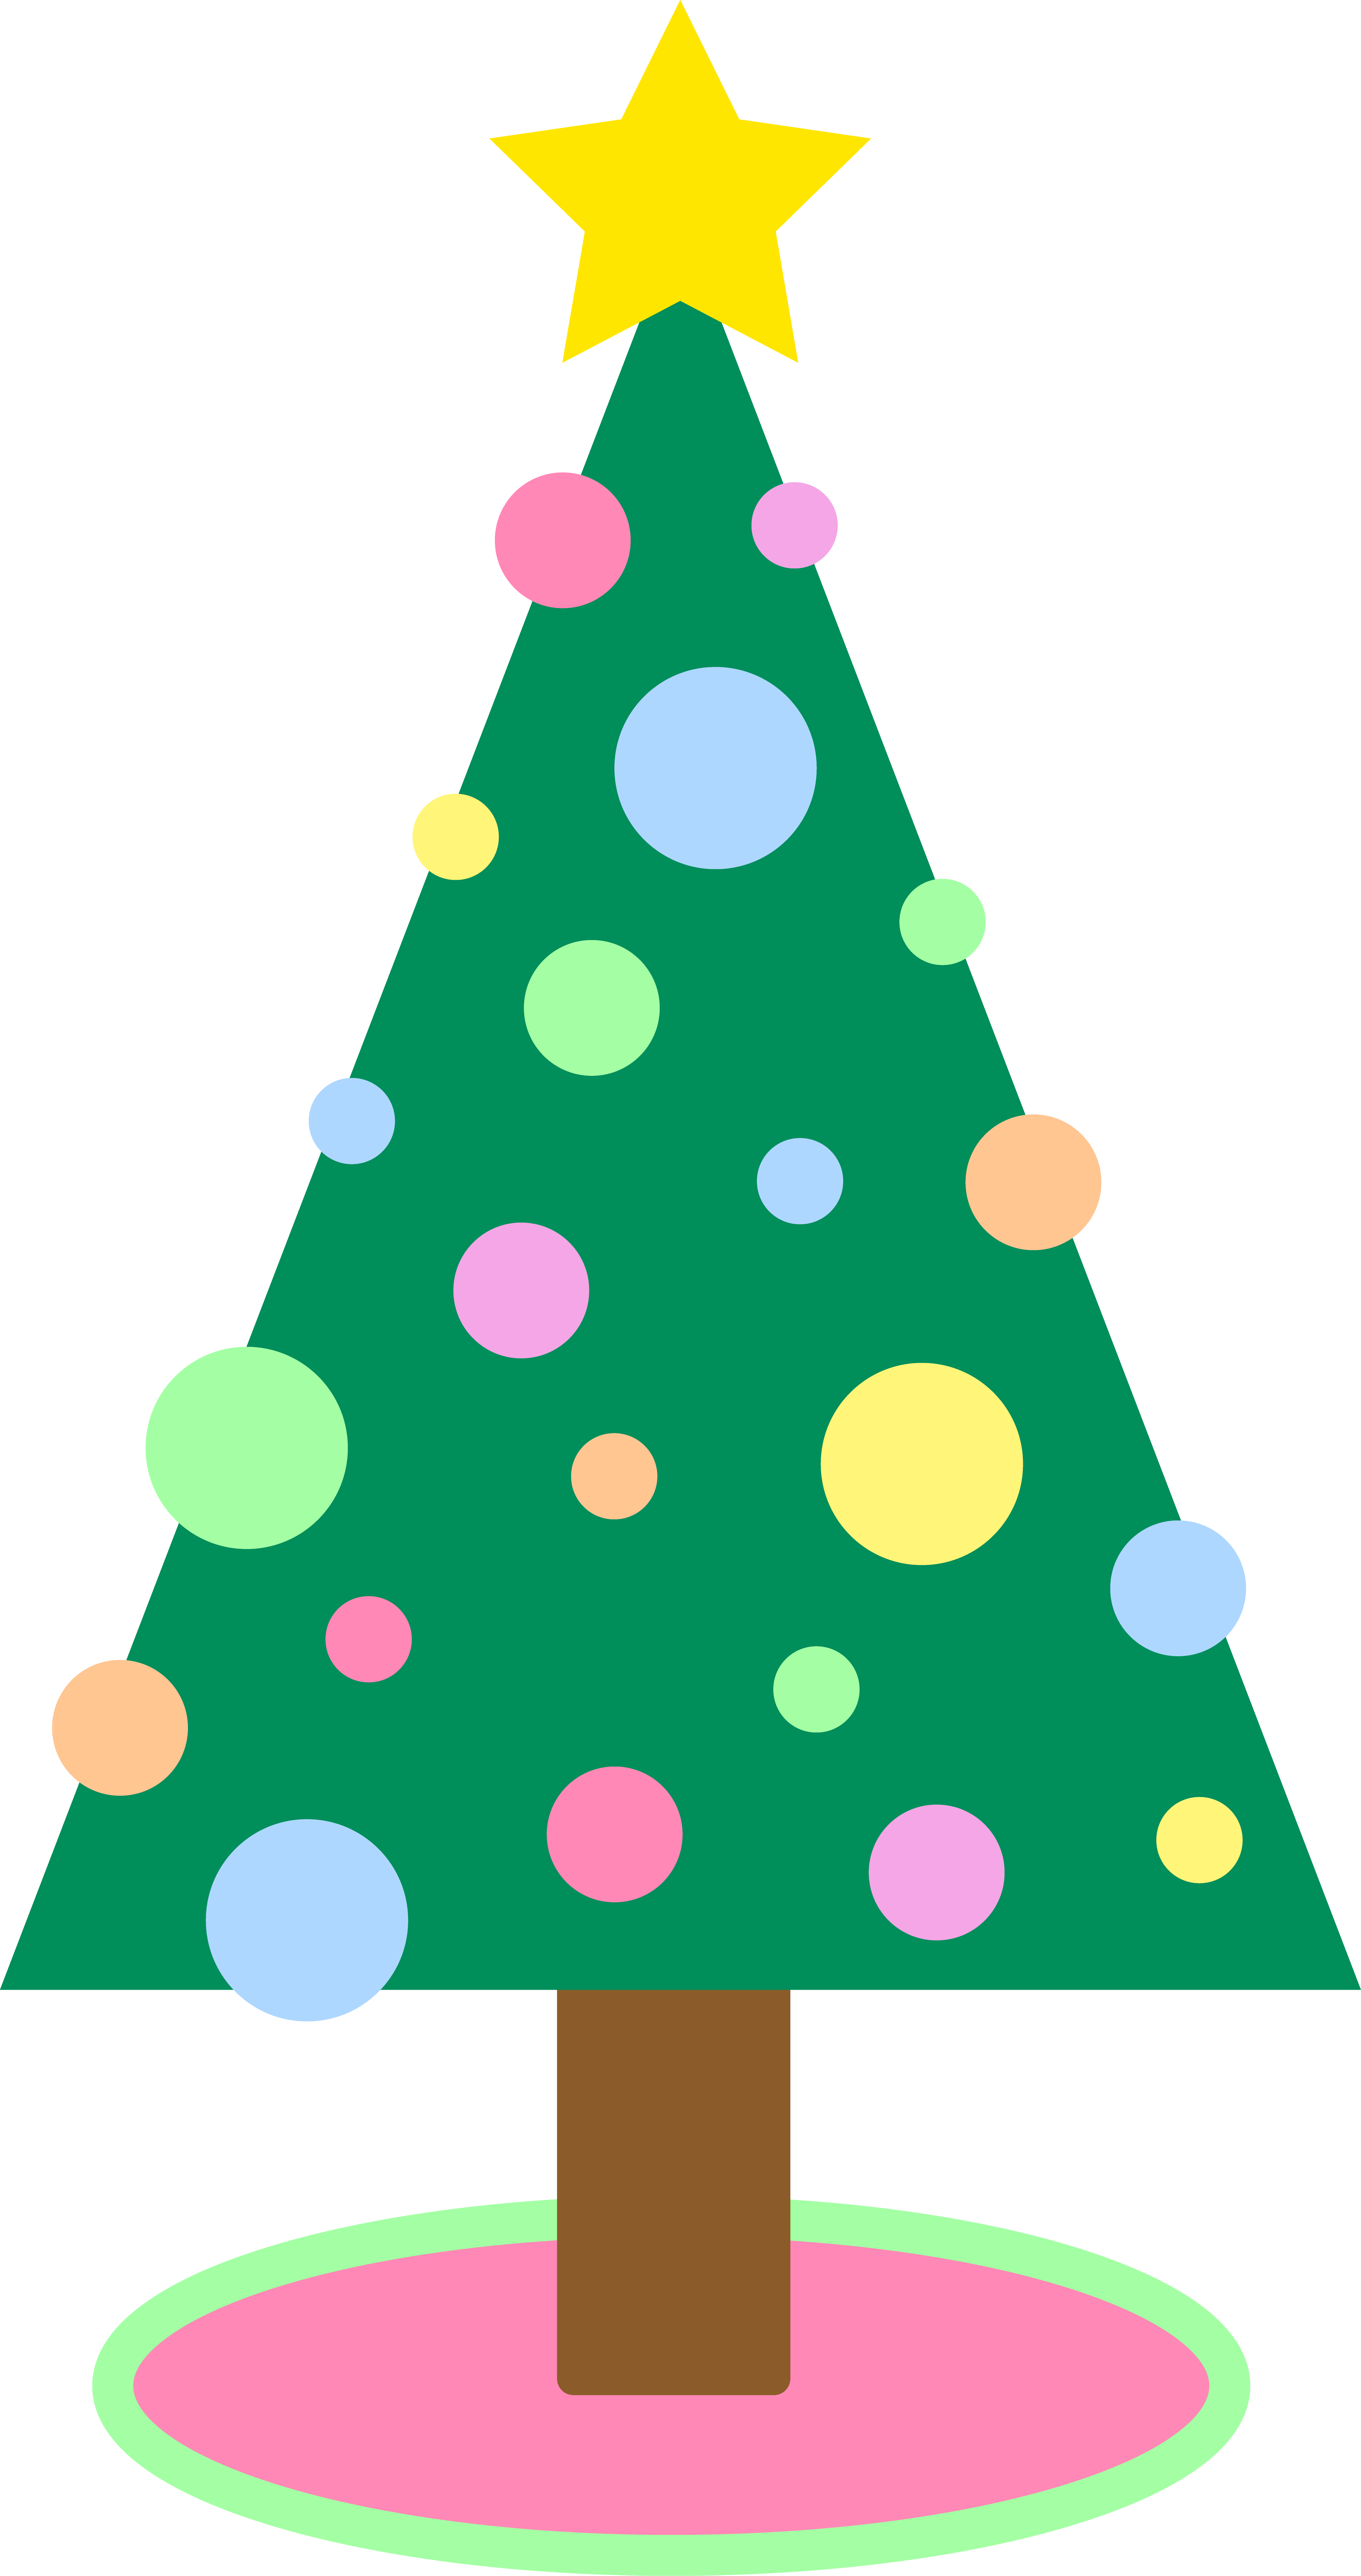 4150x7856 Cute simple pastellored christmas tree free clip art